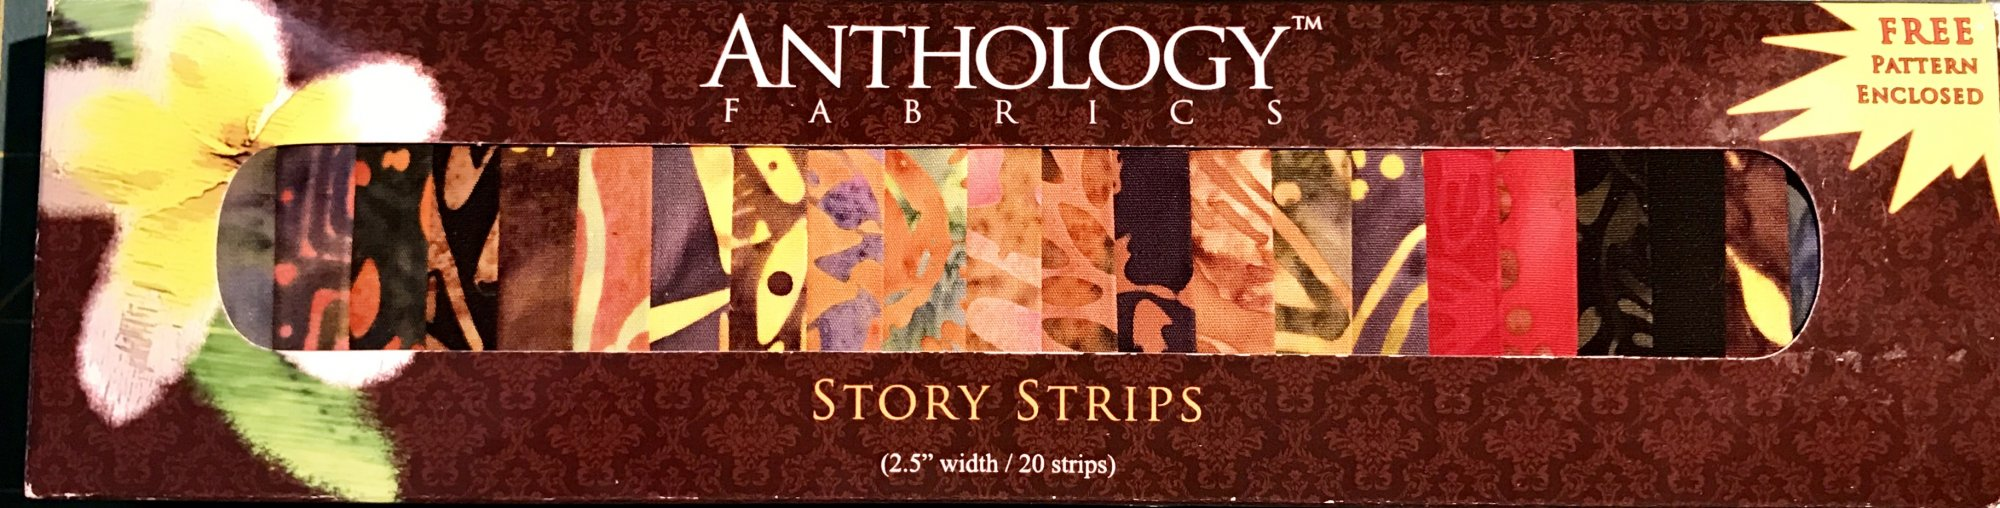 Anthology Fabric Strips - 3